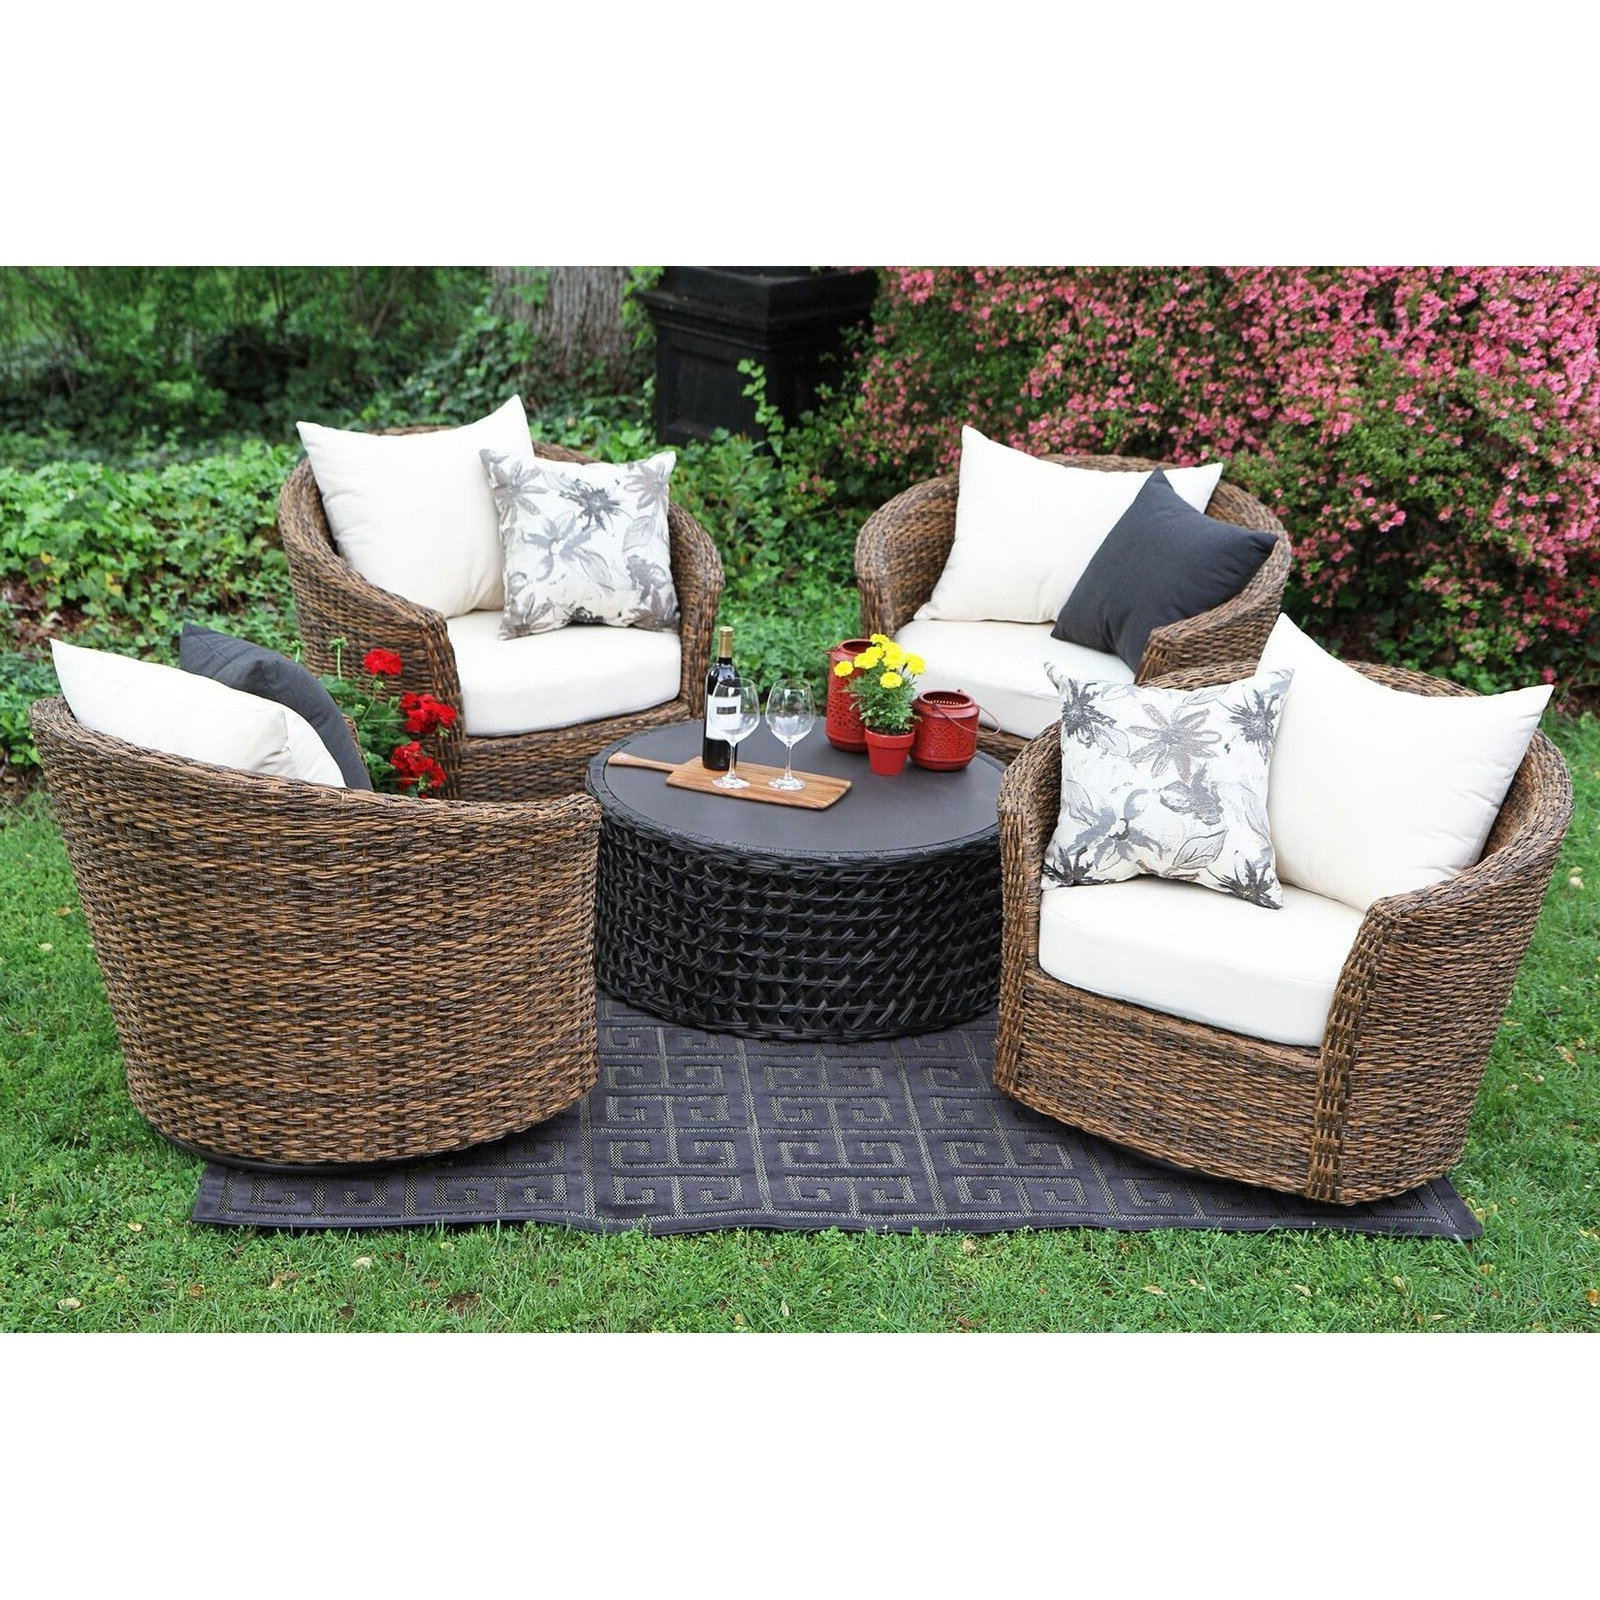 Patio Conversation Sets Without Cushions Within Latest Patio : Kroger Patio Furniture Kroger Outdoor Furniture (View 18 of 20)